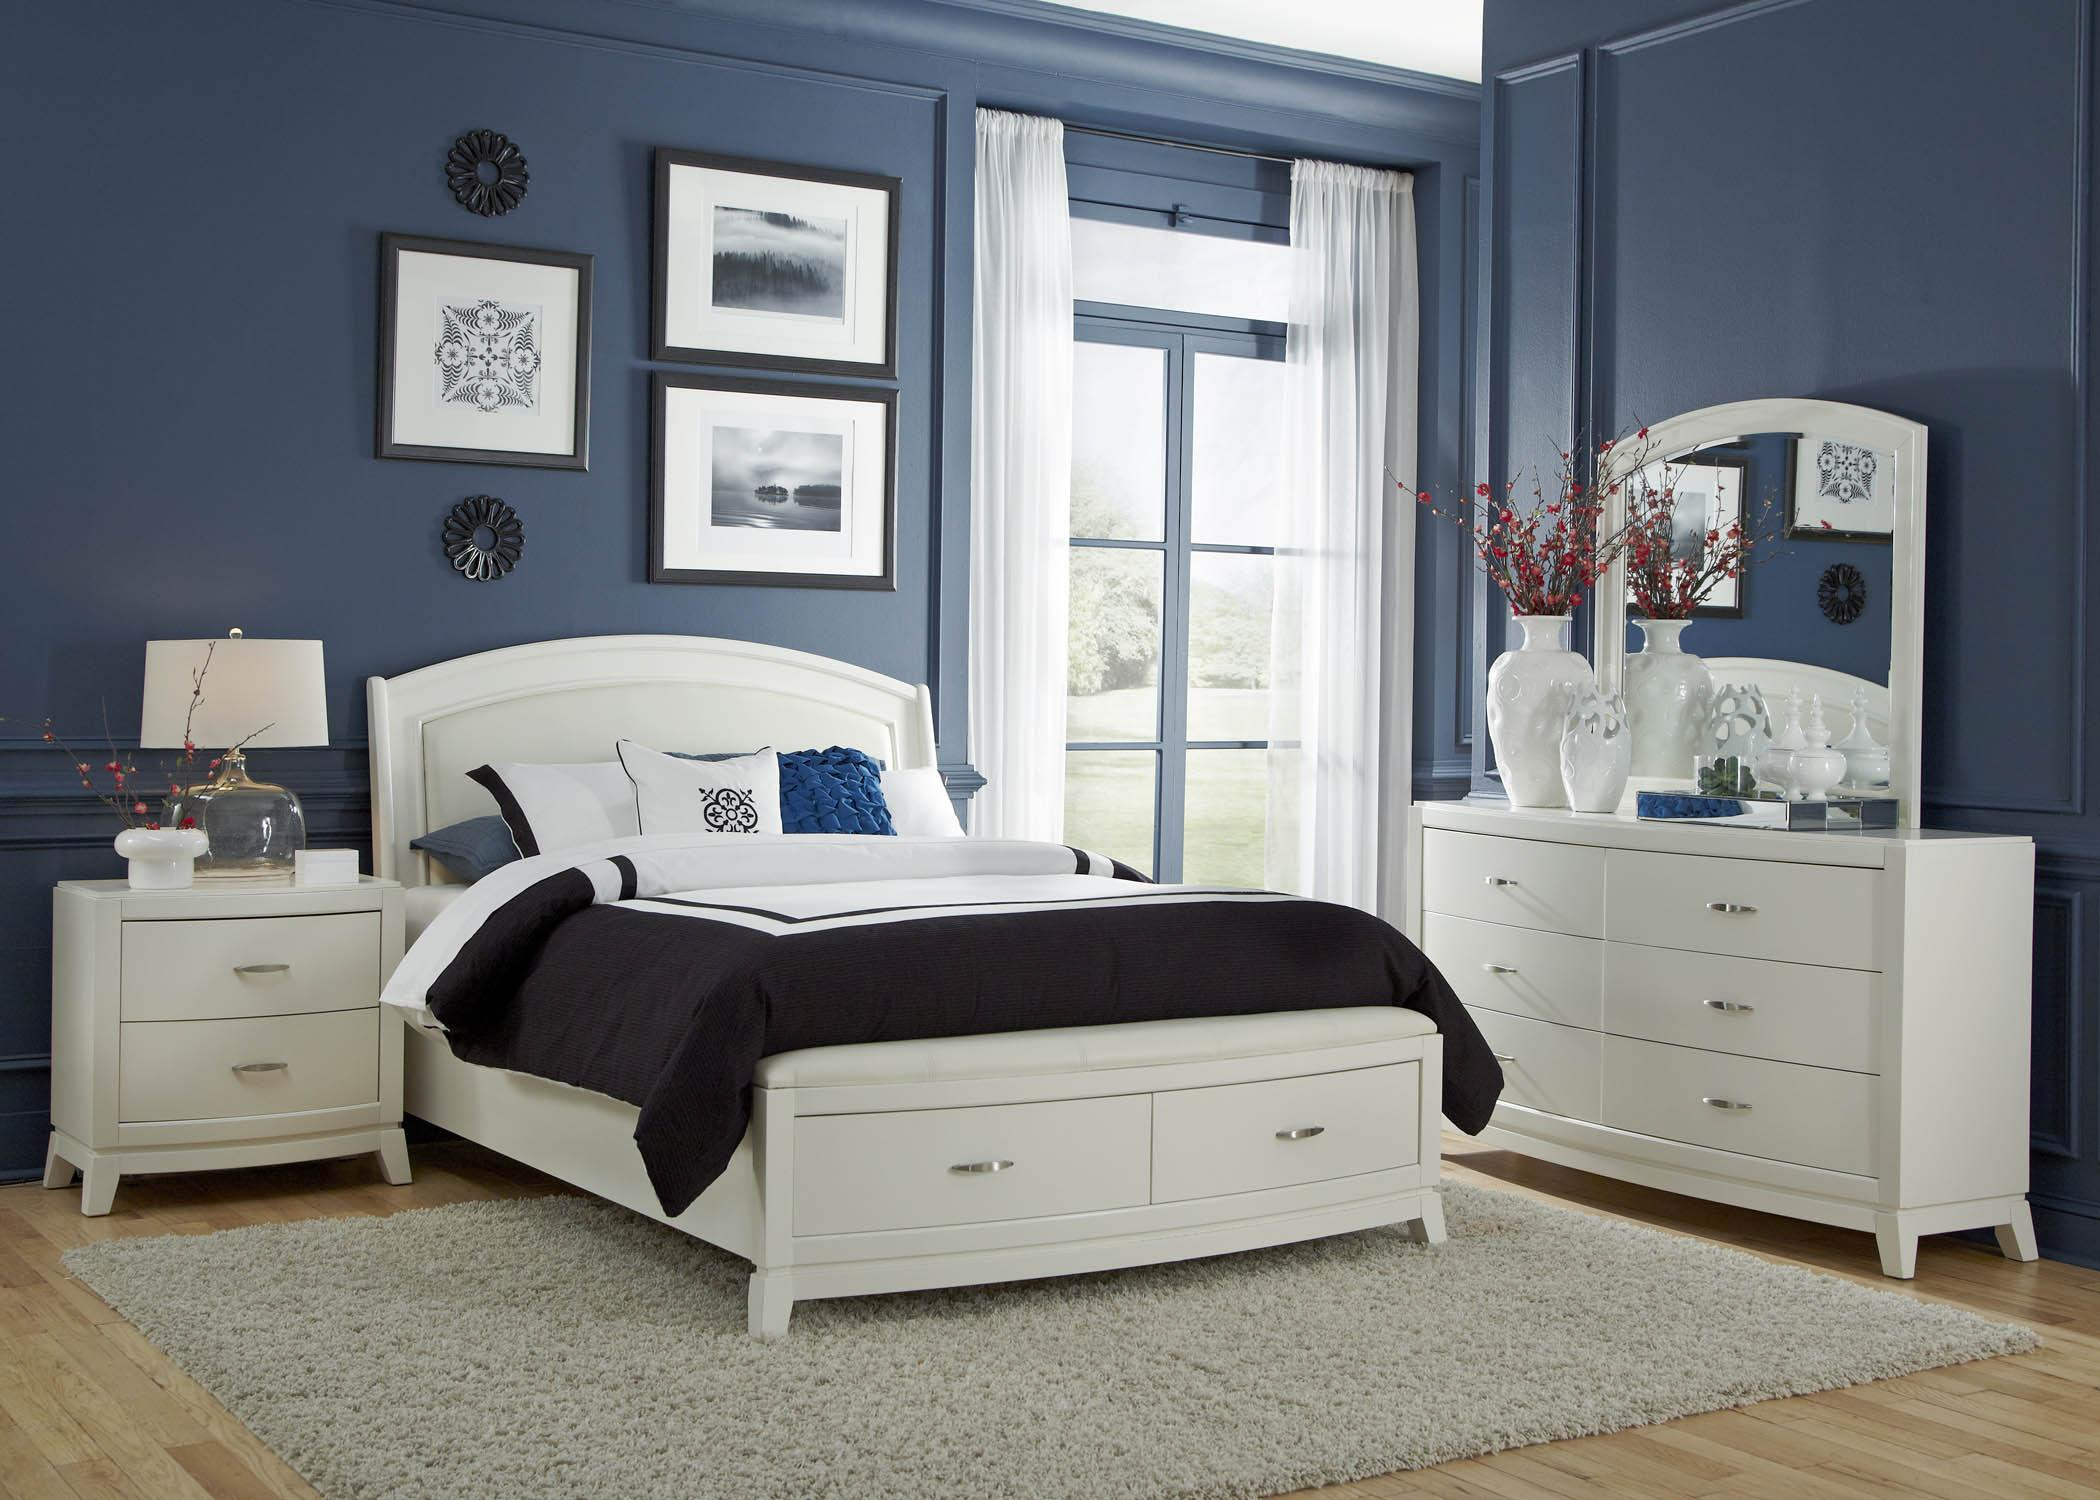 Liberty Furniture Avalon II 4PC Queen Storage Bedrom Set - Item Number: 205-BR-QSBDMN